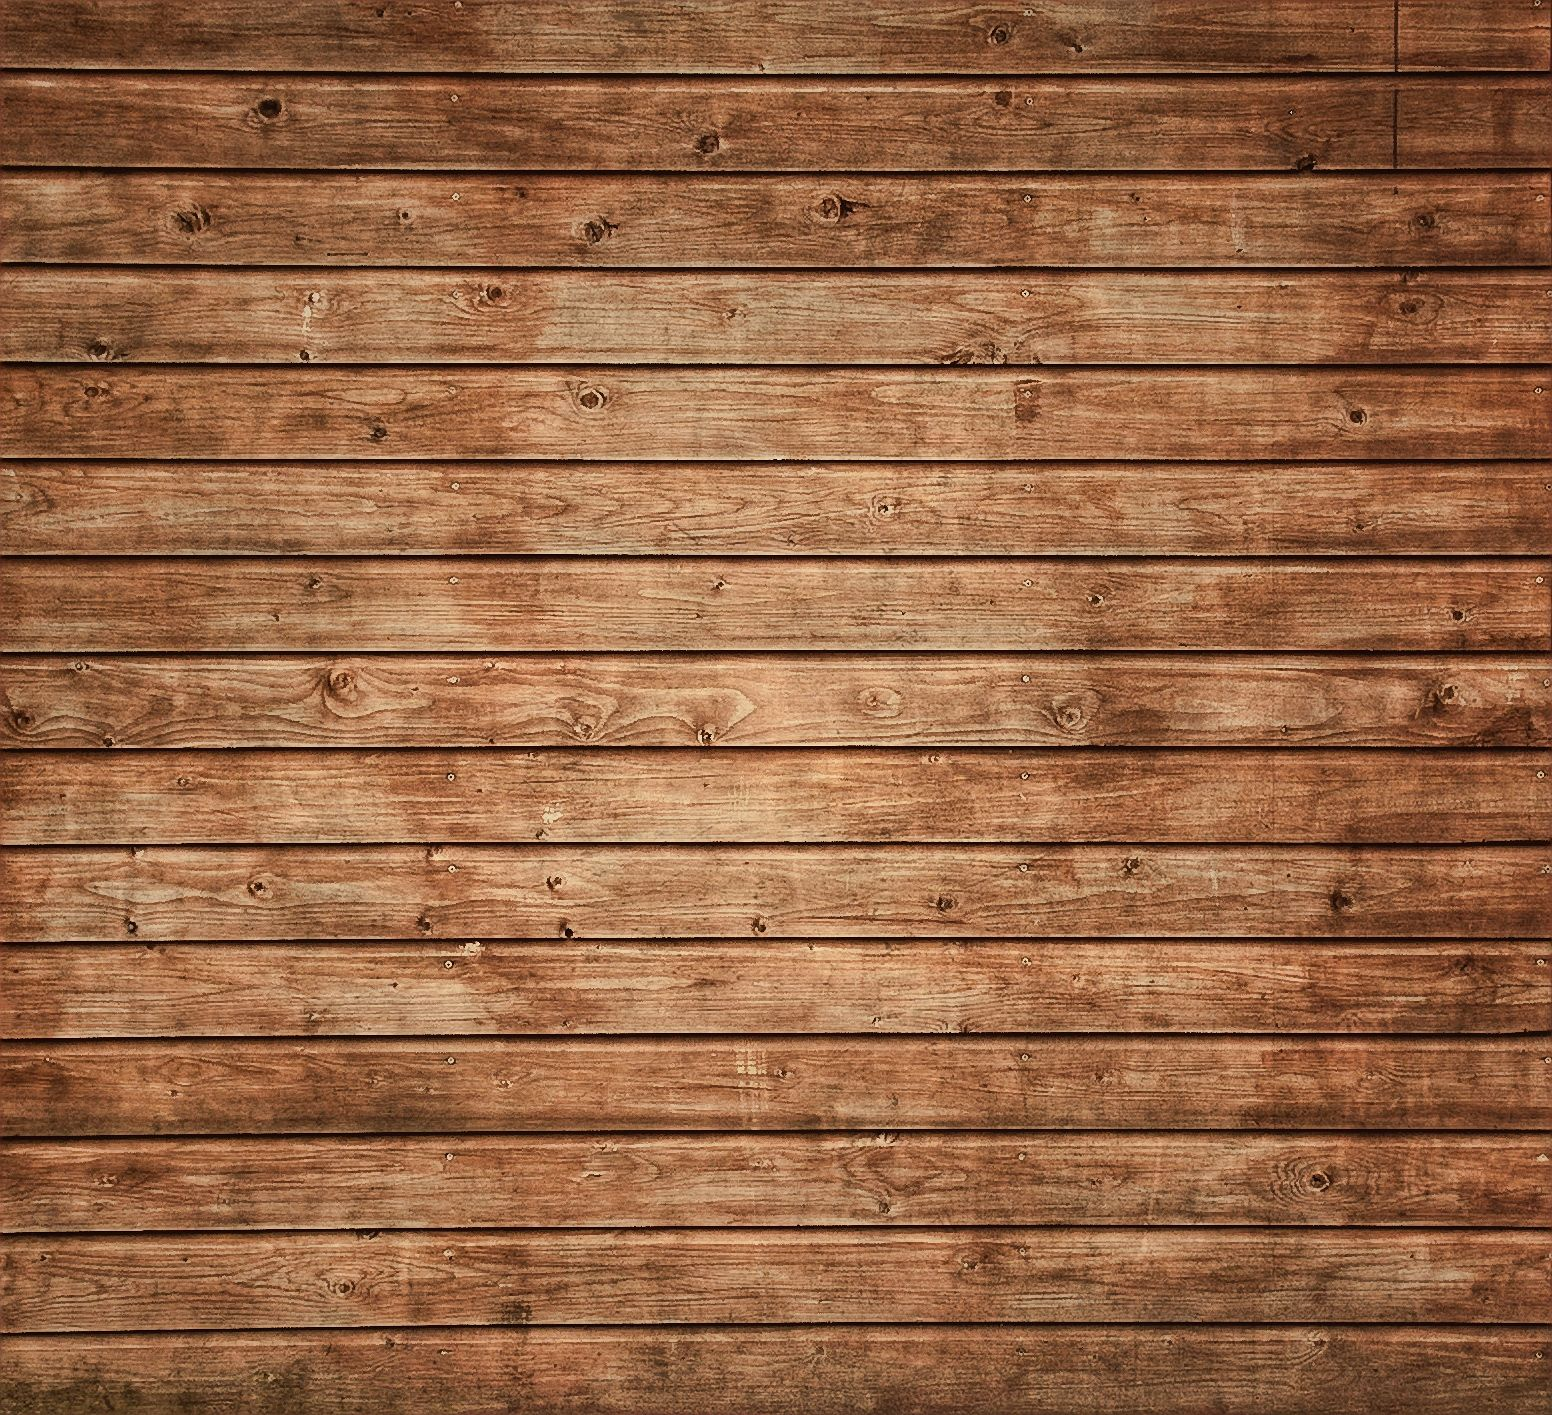 Textures Wallpapers Free Wood Texture Grunge Wood First Baptist